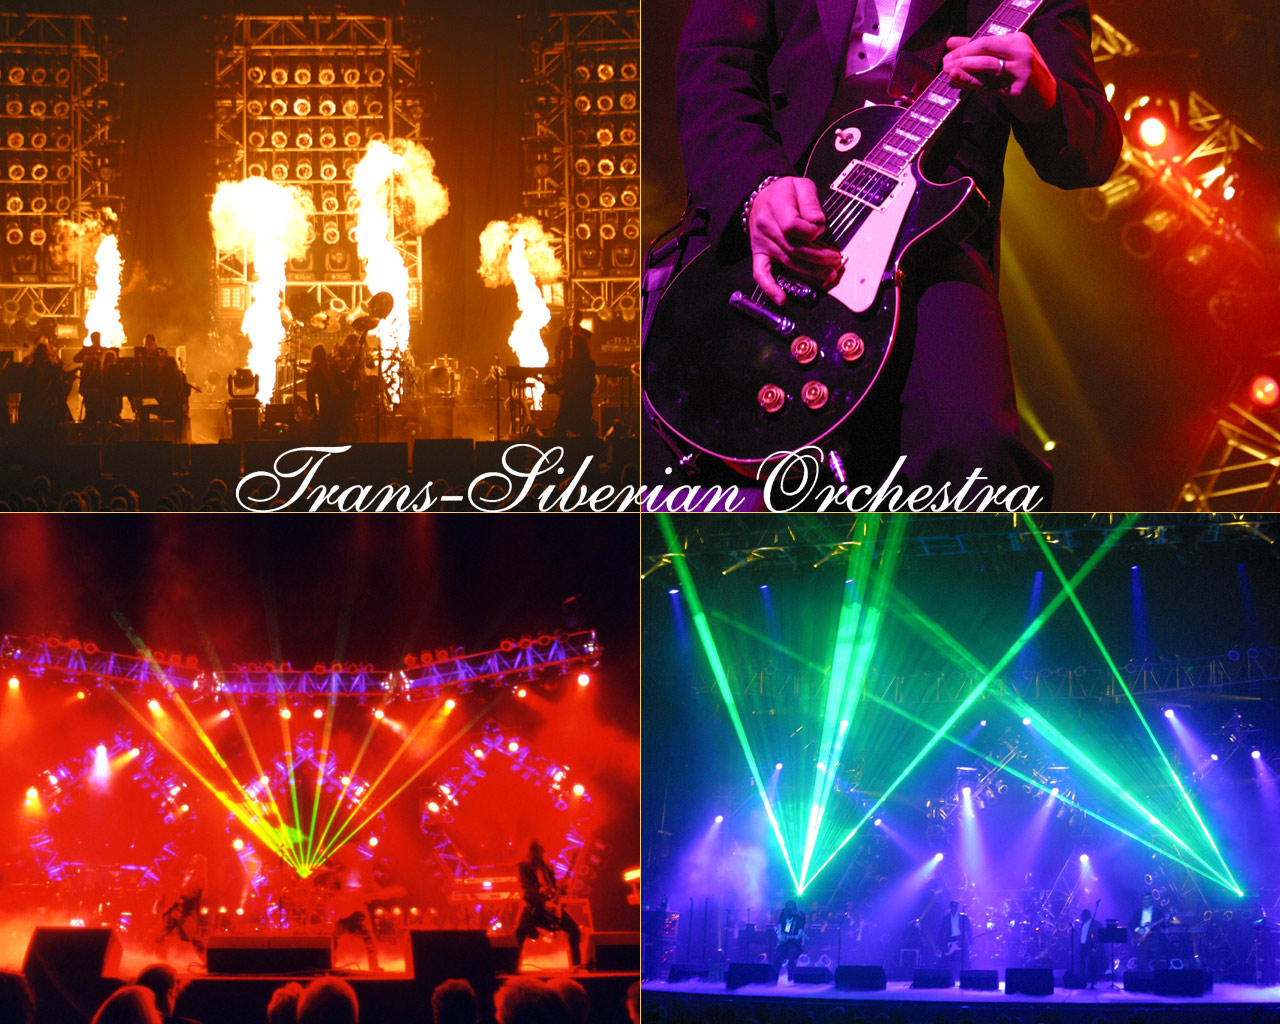 siberian orchestra tour dates 2017